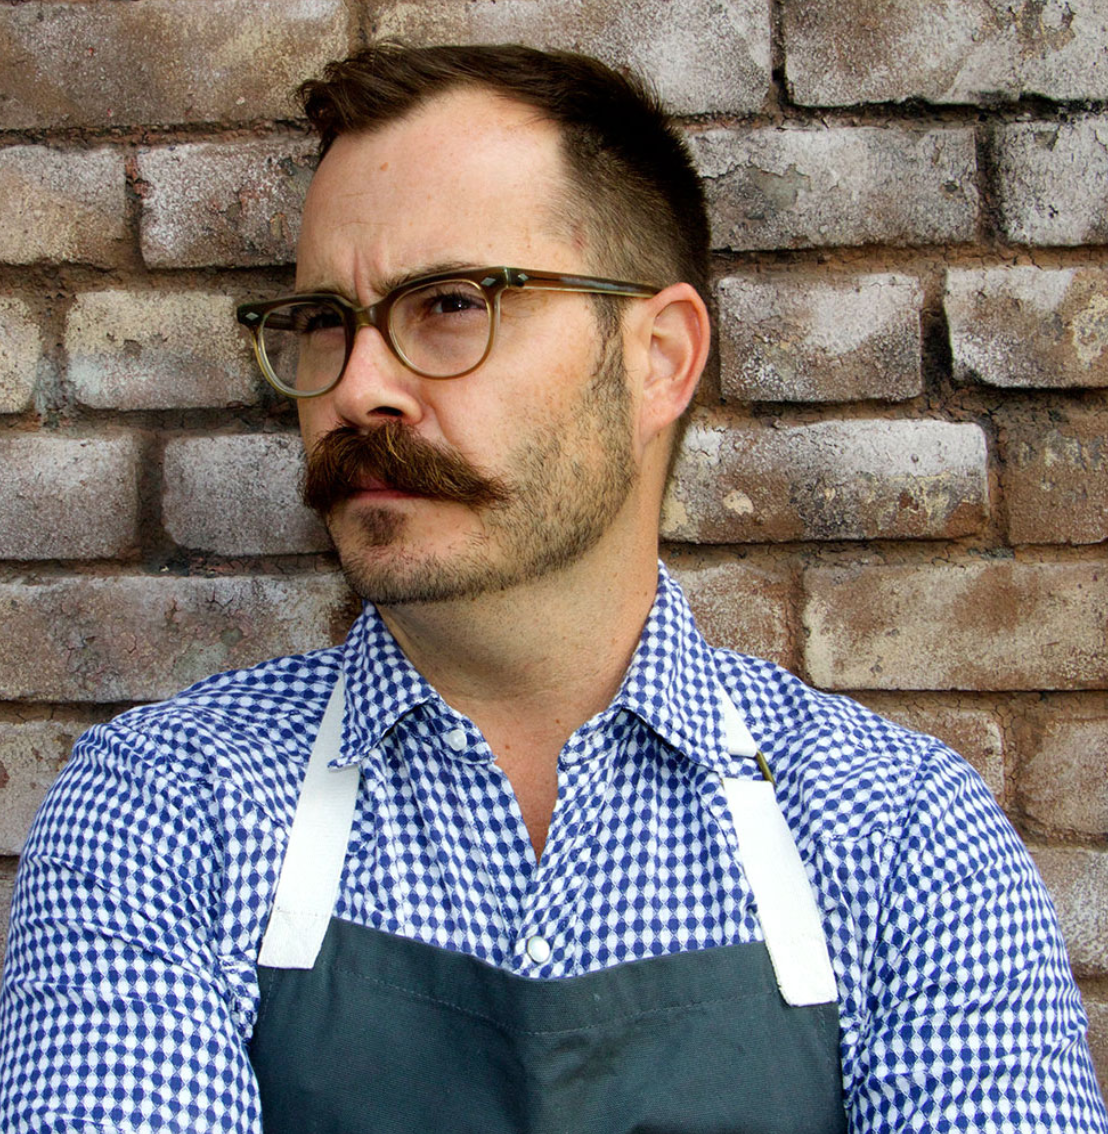 Karl Steuck - @spiritandspoon➤ Los Angeles, CACombining Midwestern sensibilities with an inherent passion for the culture, creativity and innovation so pervasive in Los Angeles, Karl has established himself as a top cocktail stylist and consultant in the industry.He initially made a name for himself setting the bar at L'Ermitage Hotel and then Hatfields. A decade later, he's still not slowing down with his hands in a number of exciting projects. www.spiritandspoon.com